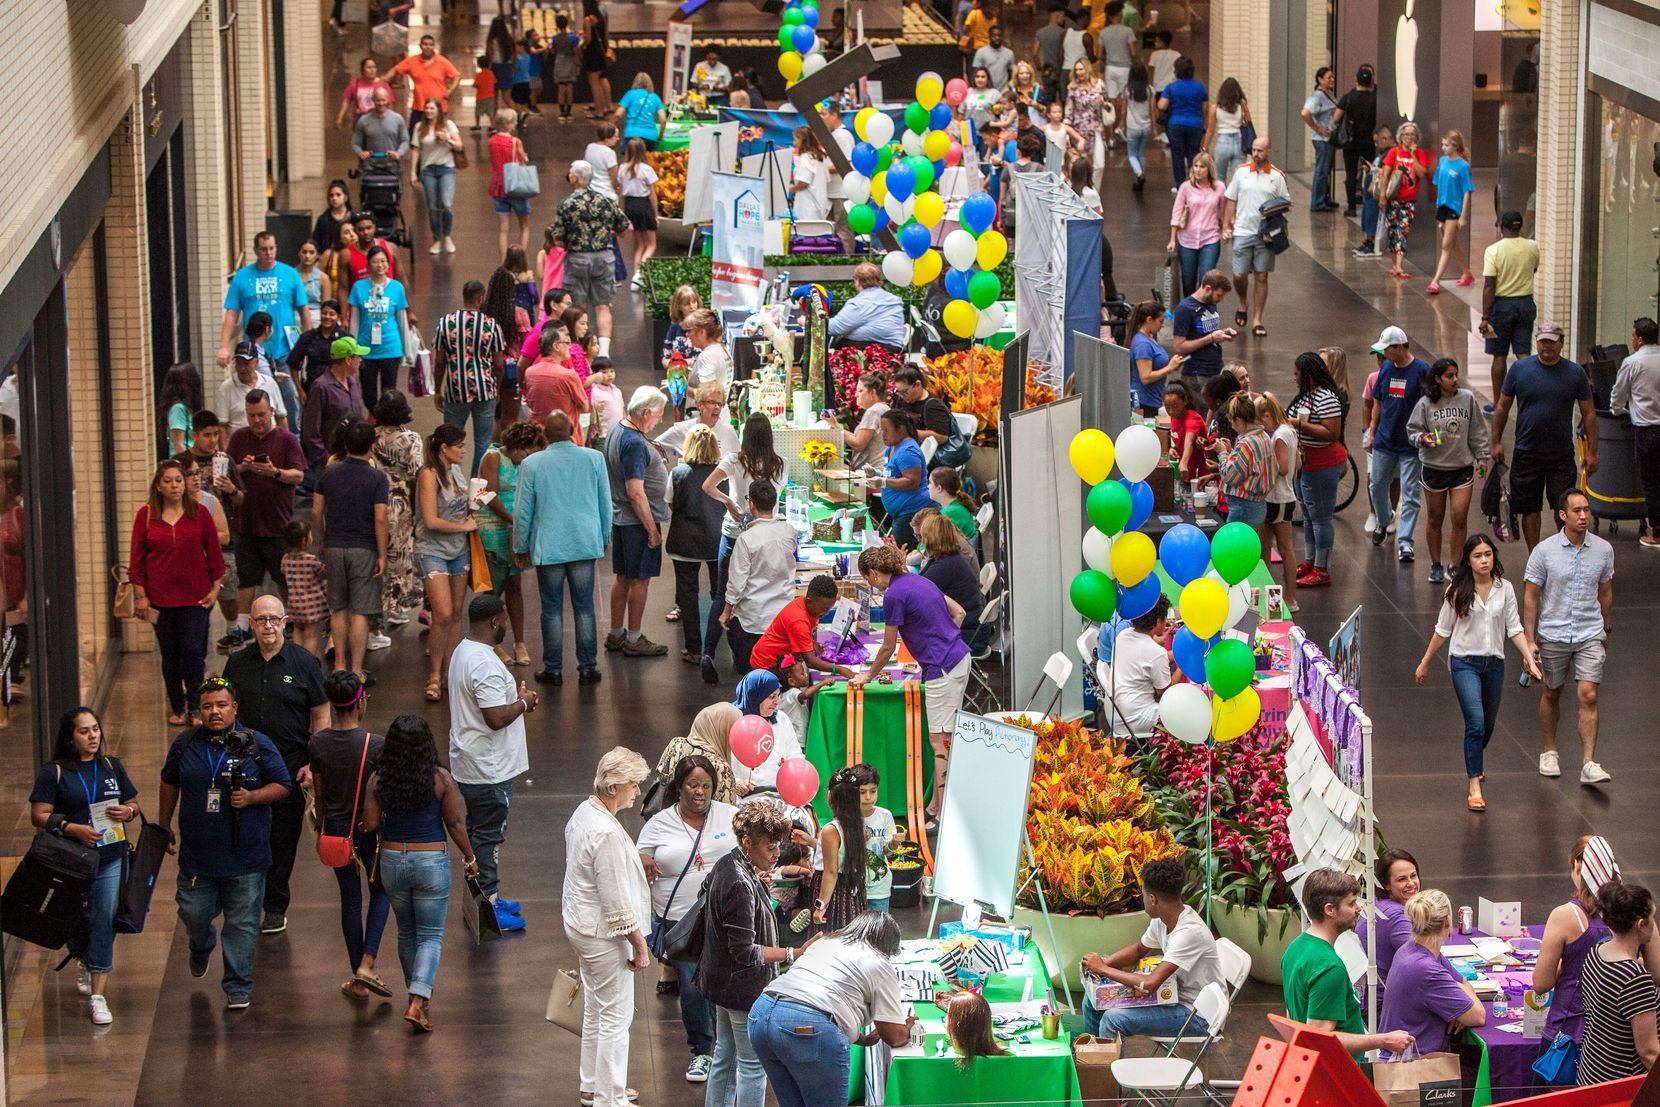 Crowds lined up to donate to nonprofits as part of North Texas Giving Day on Sept. 19, 2019, at NorthPark Center in Dallas.